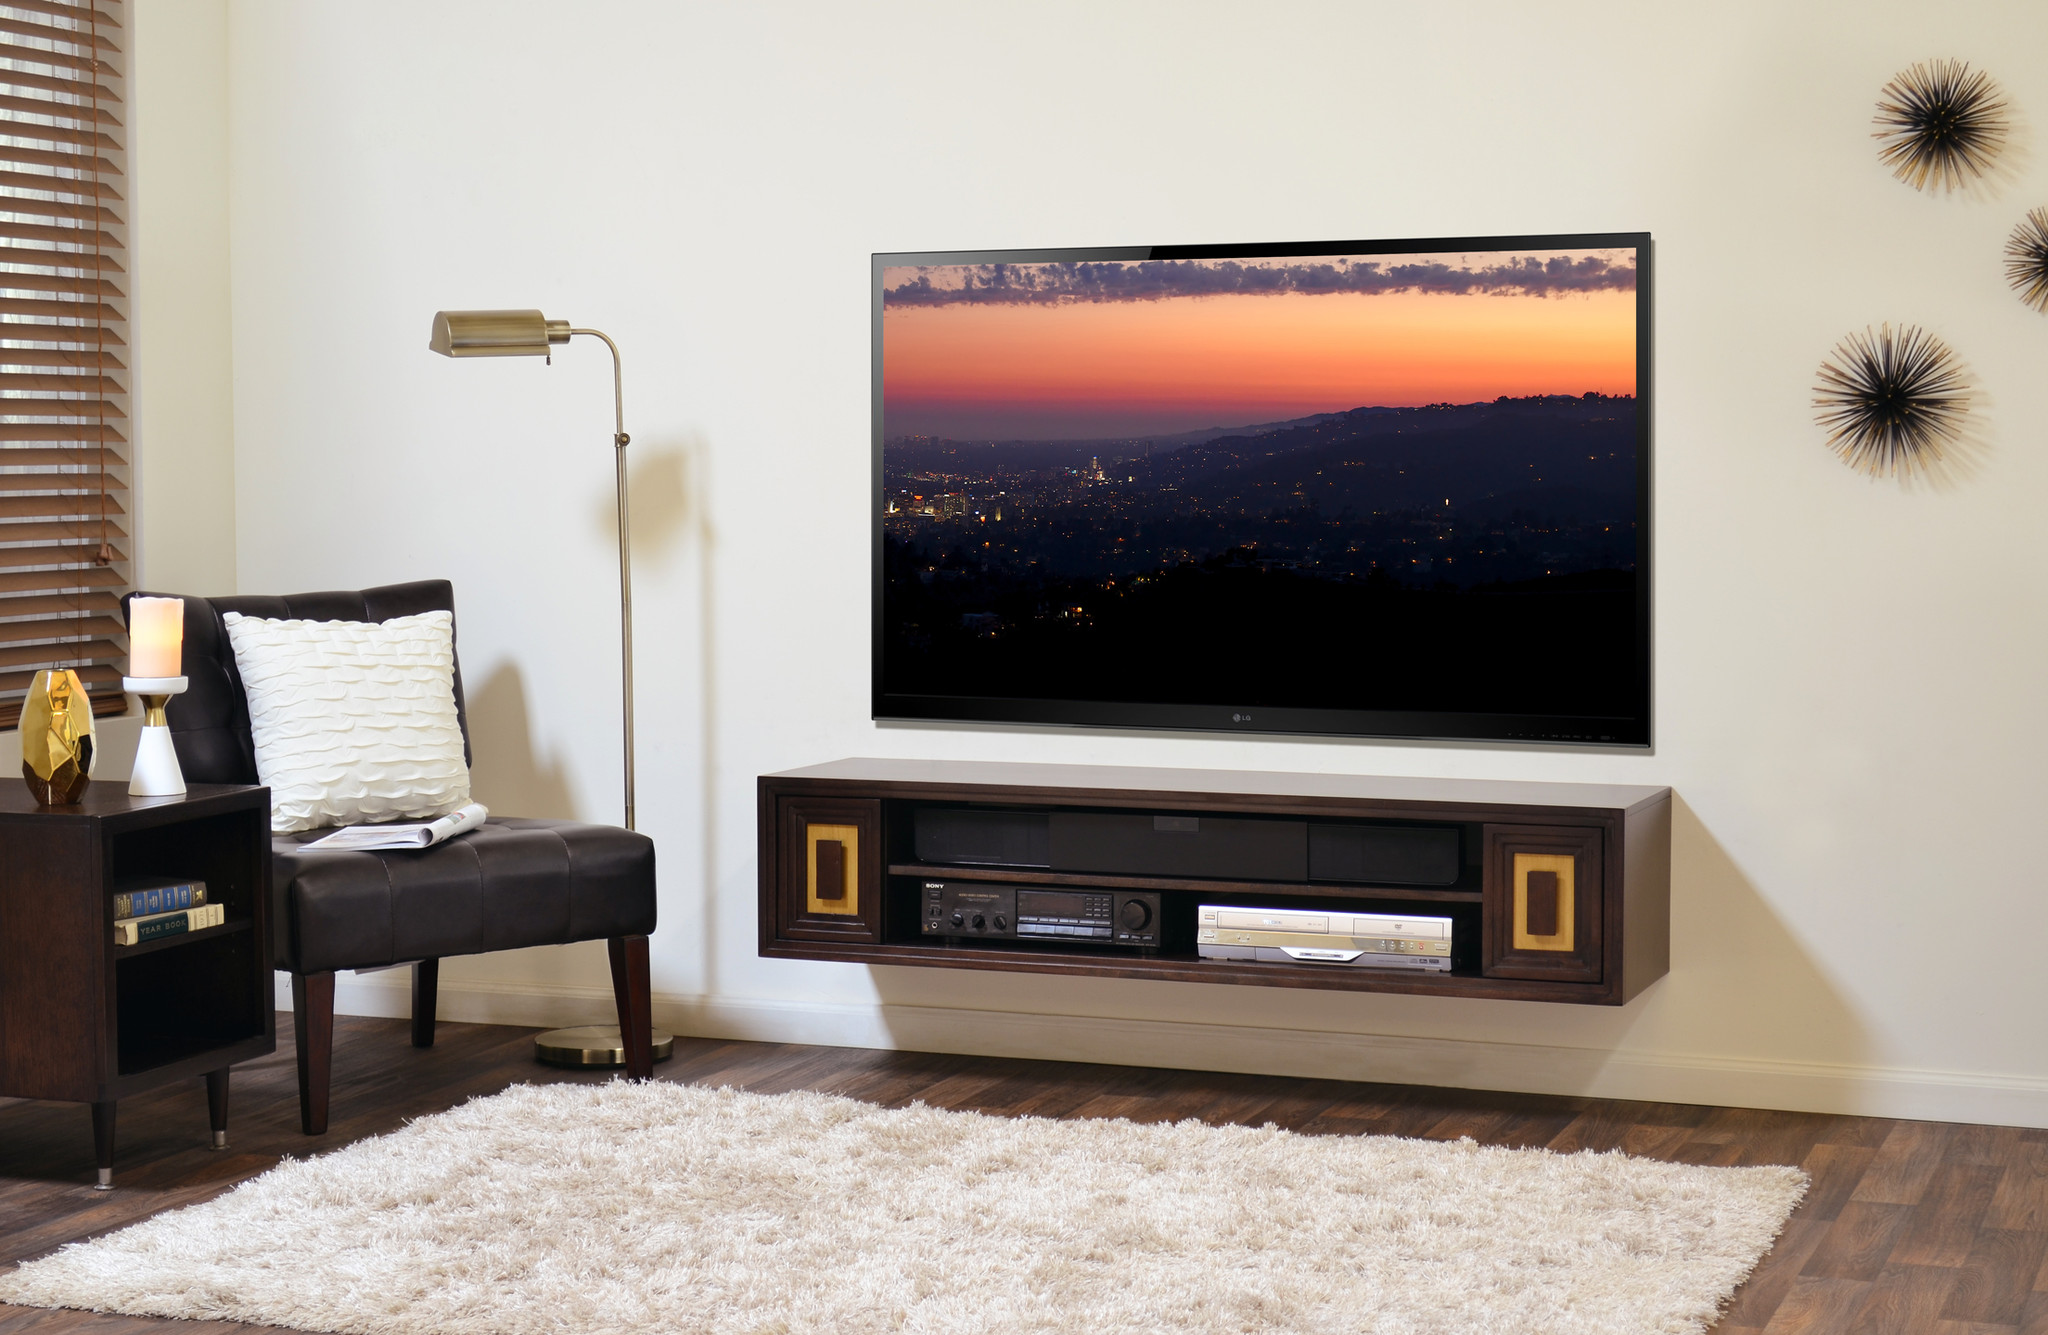 wood floating media console with shelves DVD player sound system flat TV a  single black chair